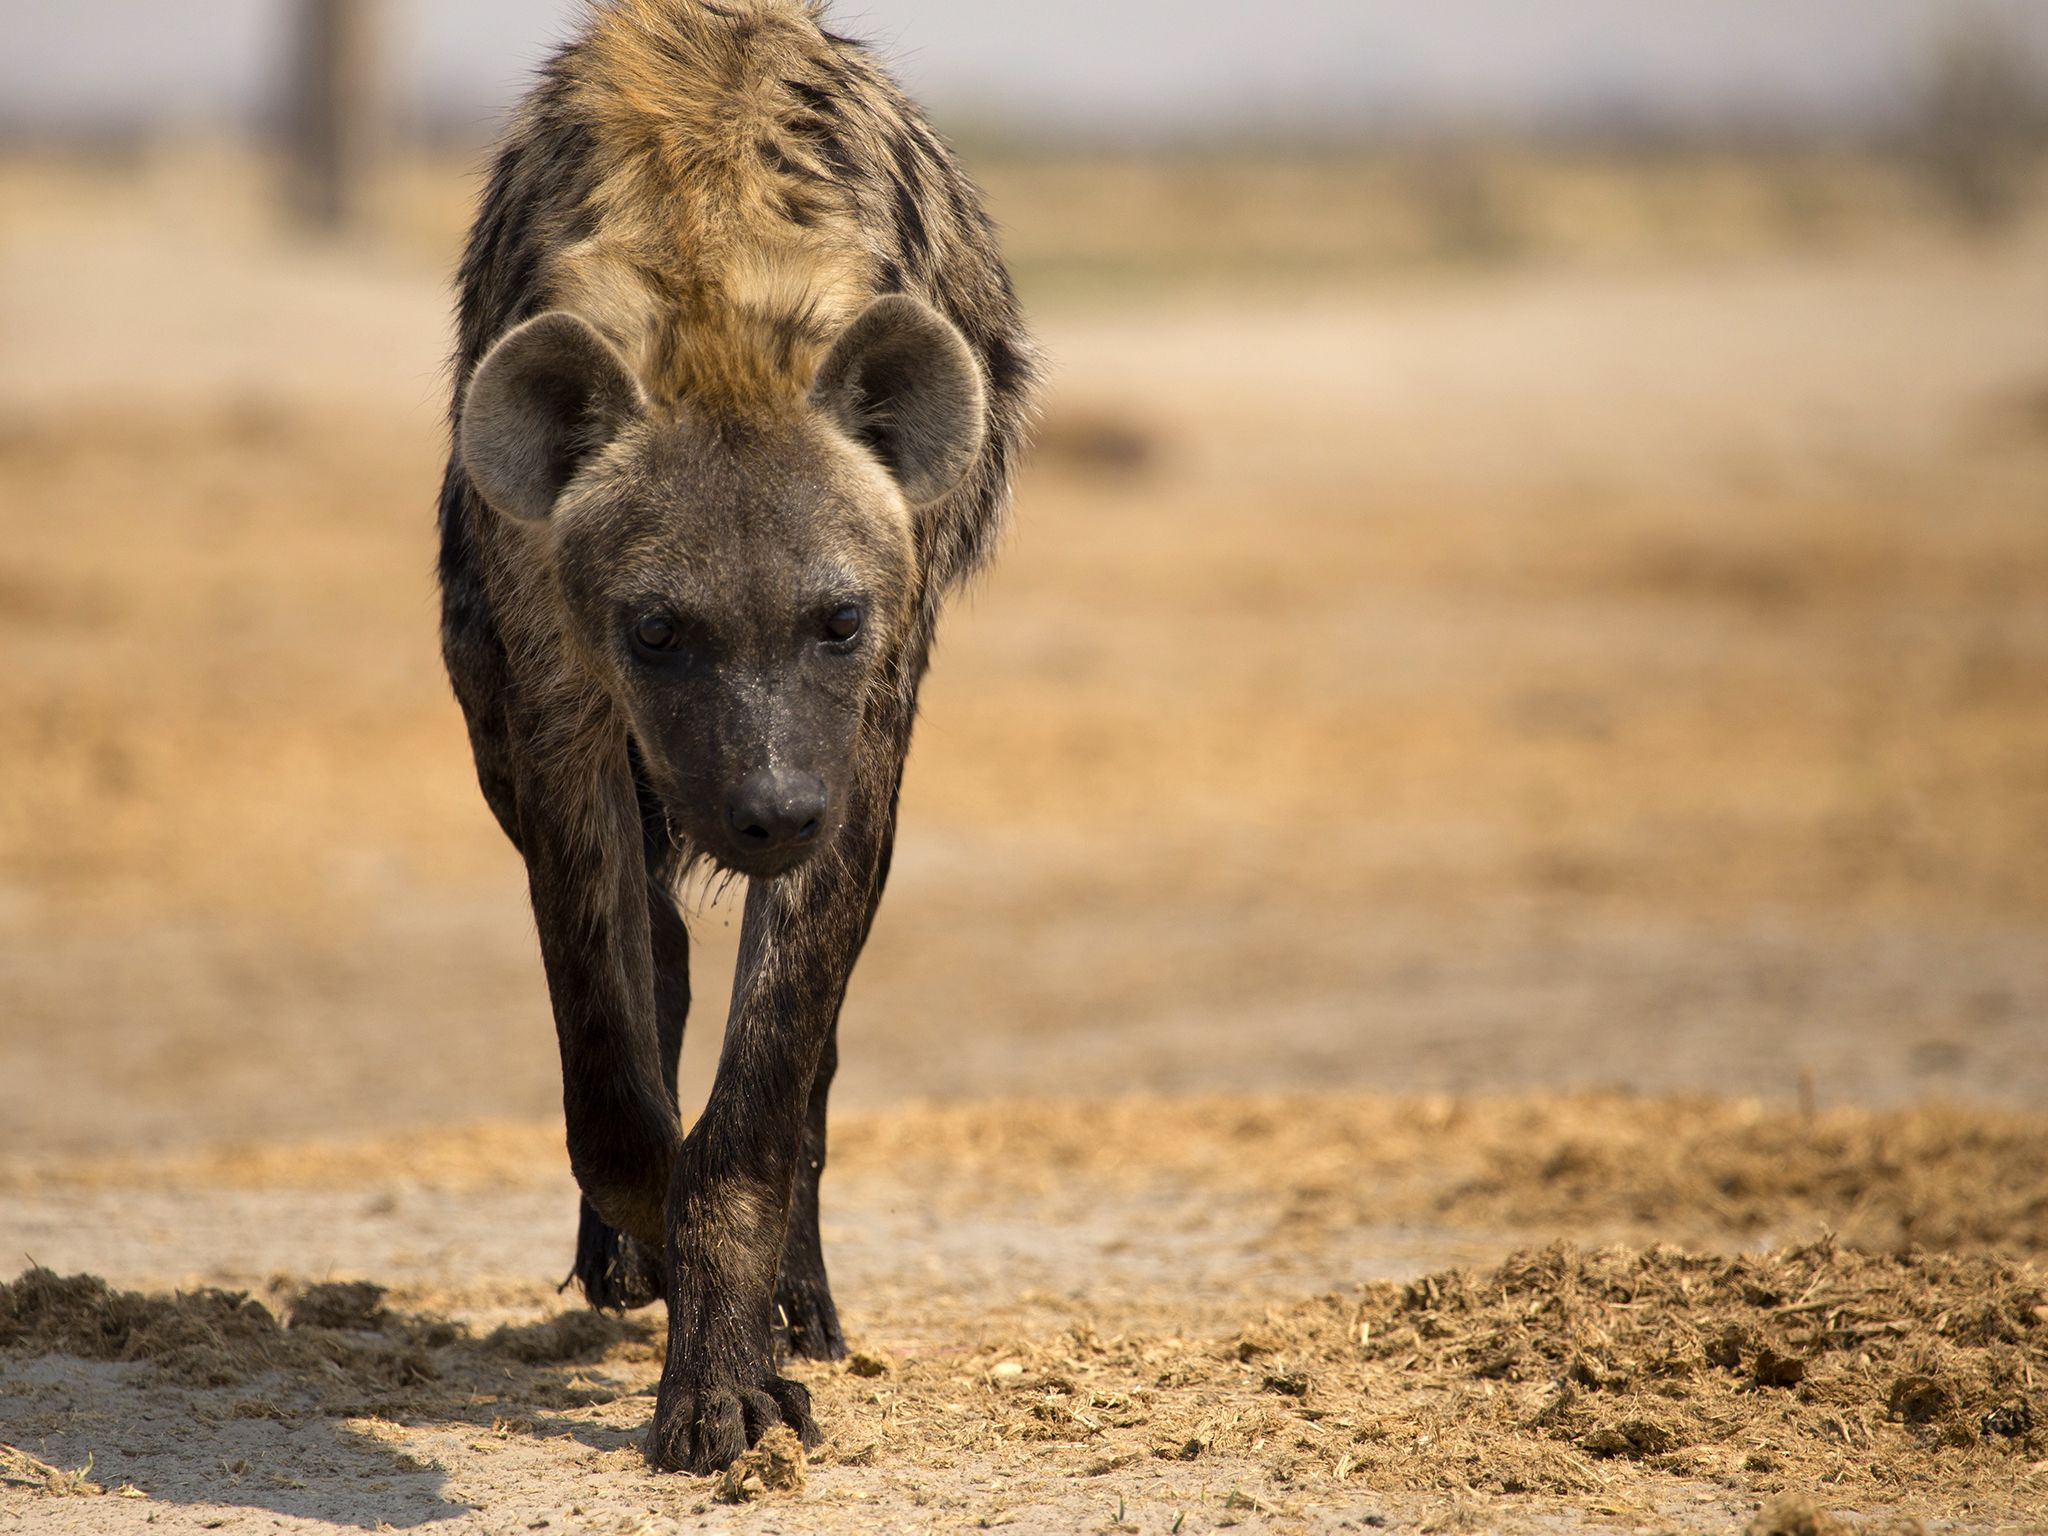 Botswana: Zalika's daughter and princess of the hyena clan walks over arid ground at Marabou... [Photo of the day - نوامبر 2016]